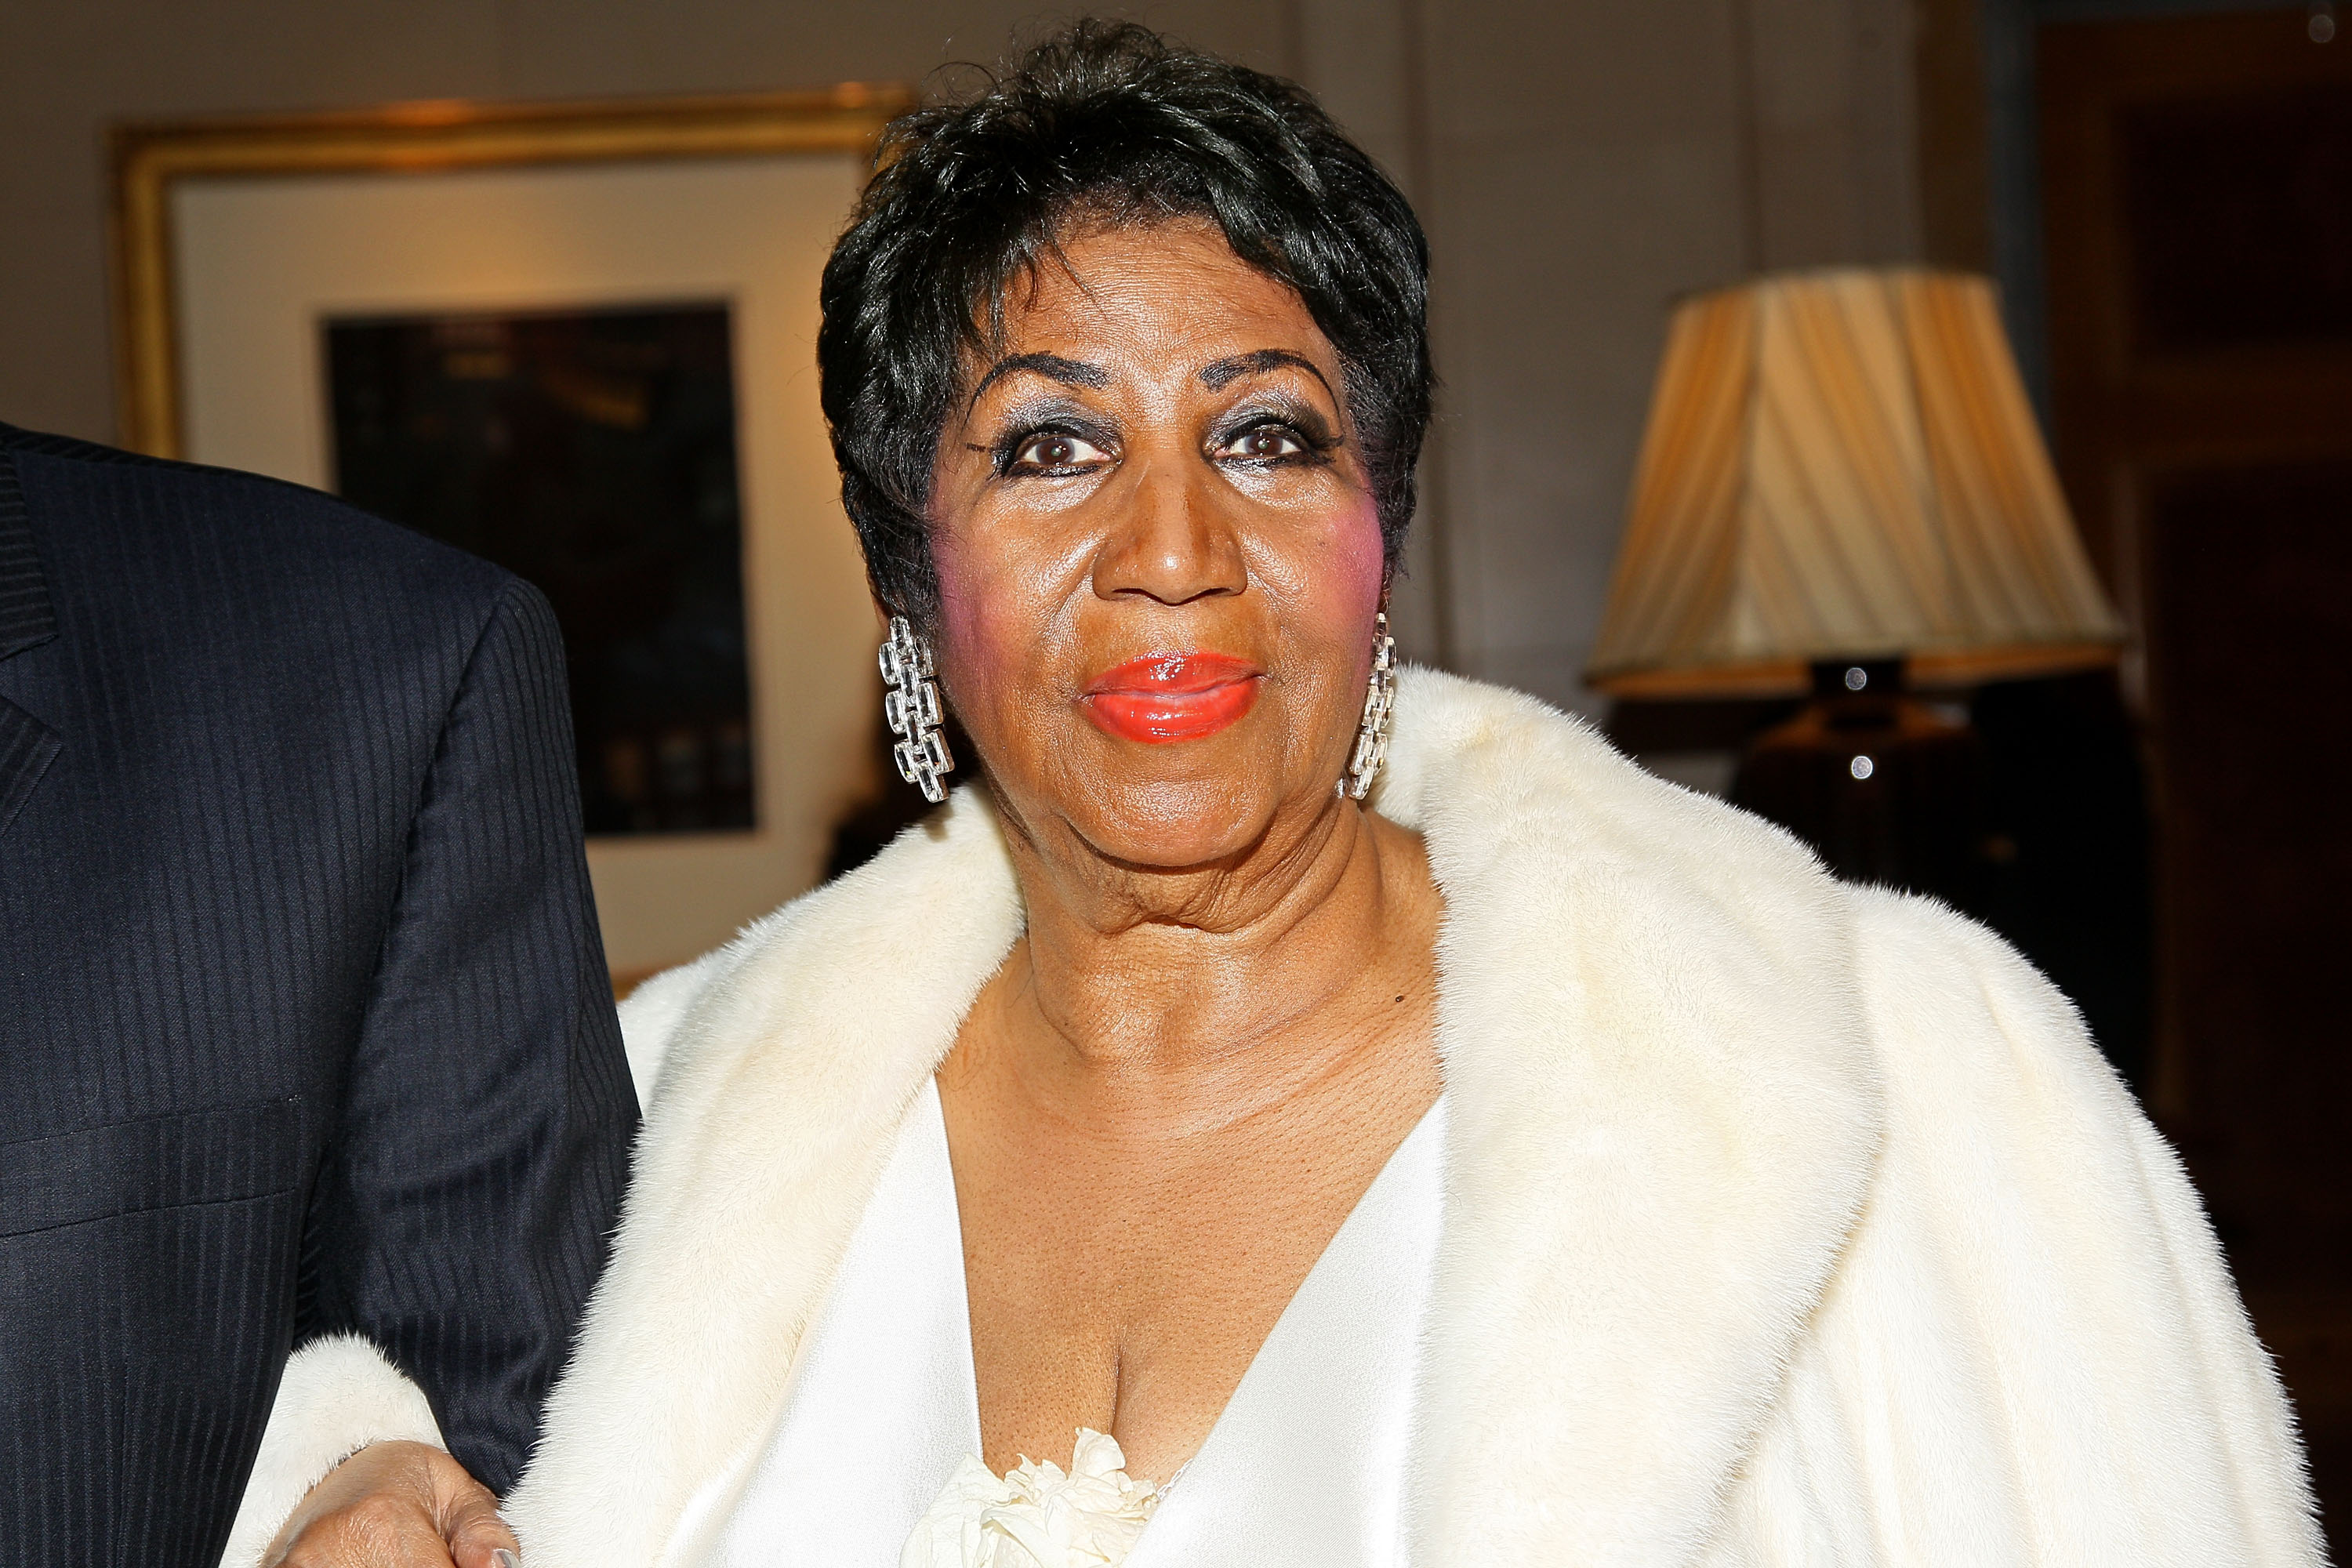 Aretha Franklin attends her 74th Birthday Celebration at The Ritz Carlton Hotel on April 14, 2016 in New York City.